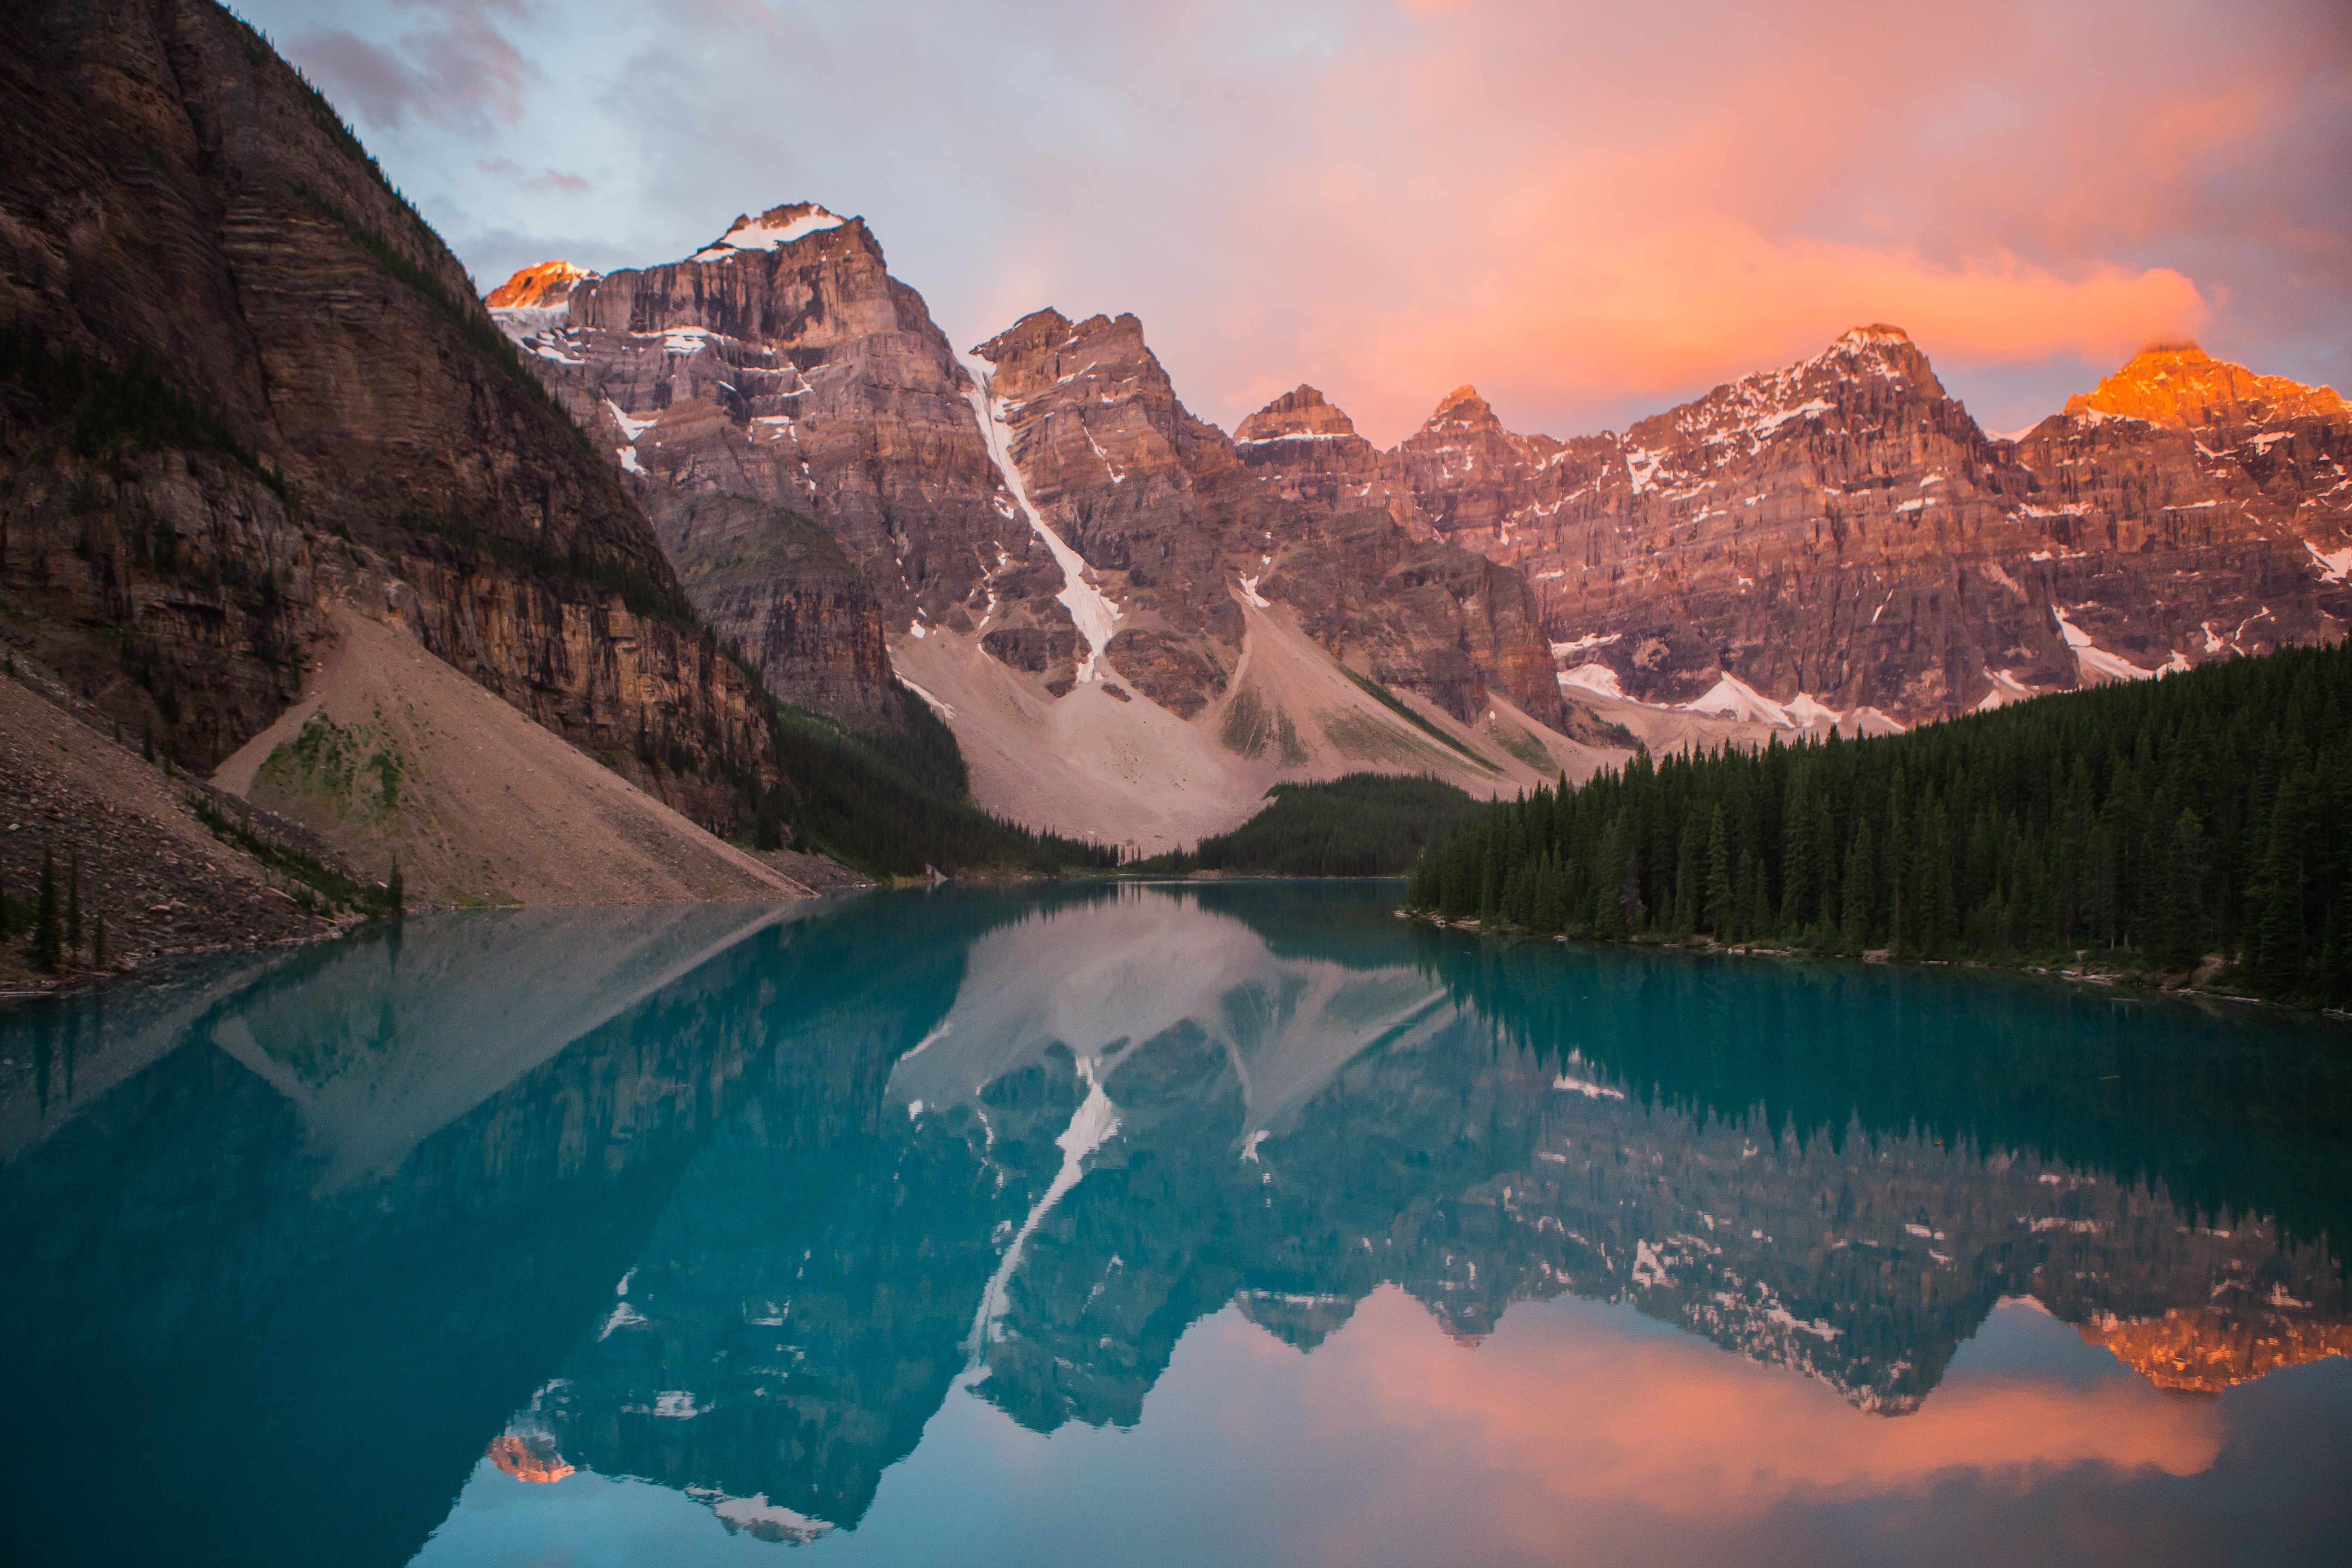 The azure Moraine Lake reflecting nearby mountains during sunset